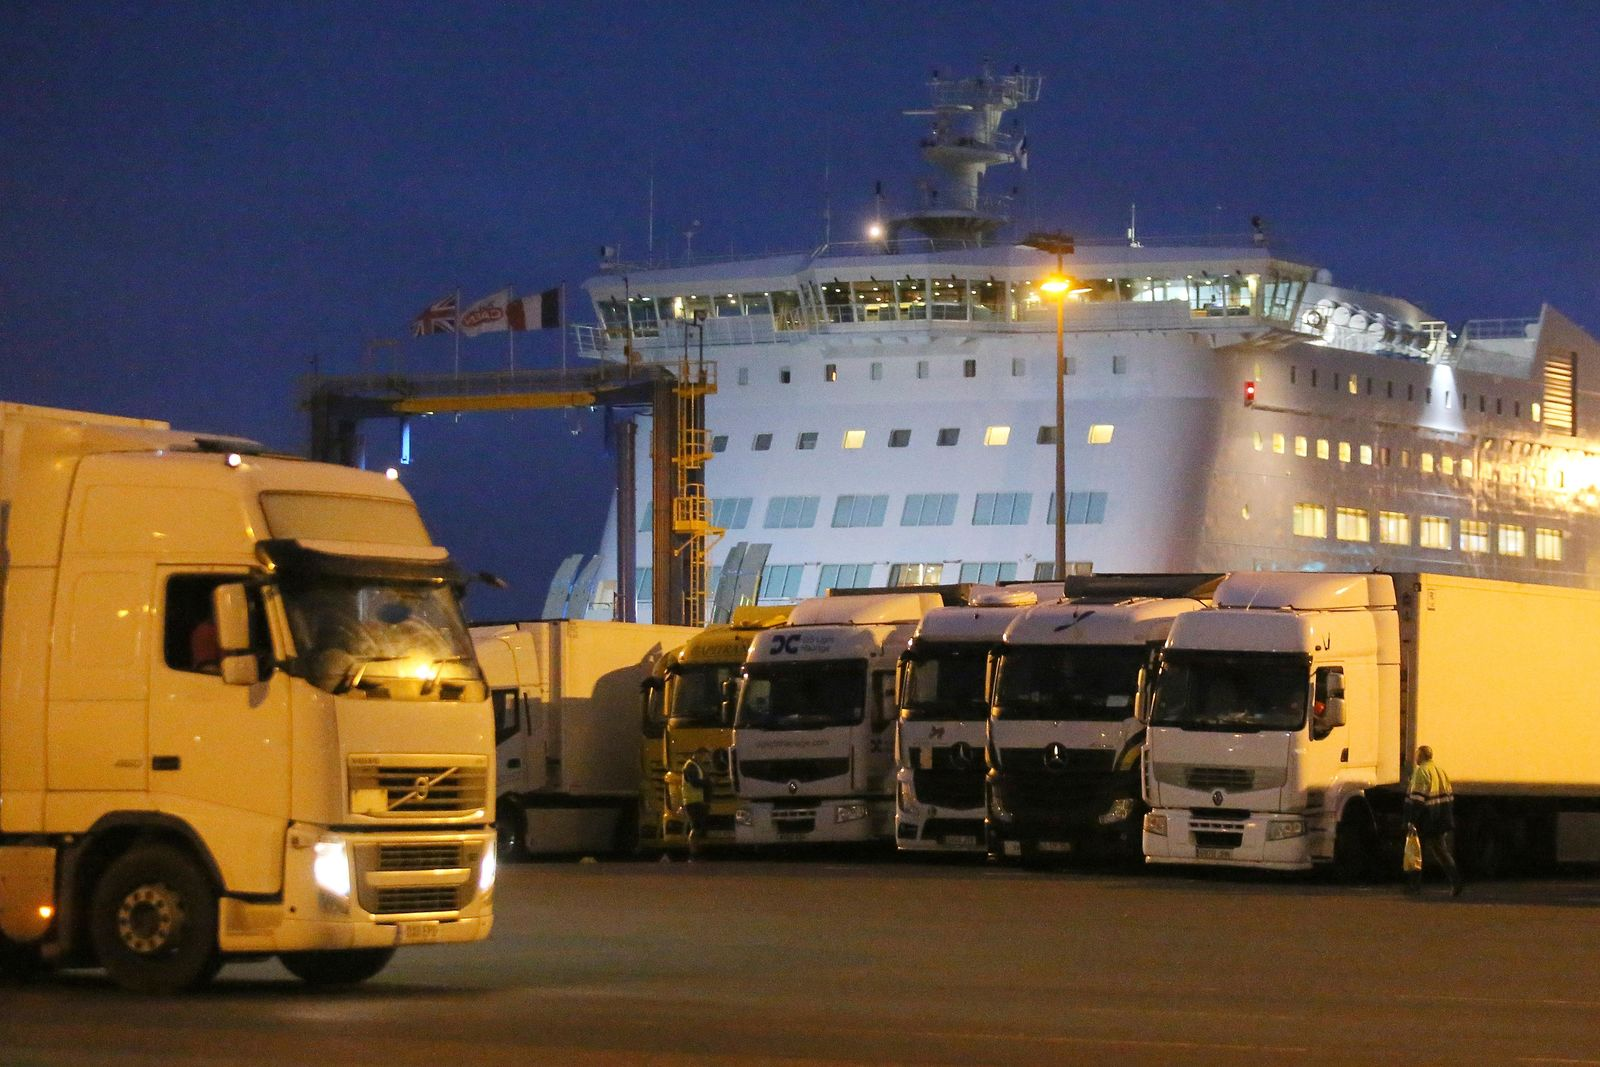 Trucks park as a ferry coming from Britain's port of Portsmouth docks at the transit zone at the port of Ouistreham, Normandy, Thursday, Sept.12, 2019. France has trained 600 new customs officers and built extra parking lots arounds its ports to hold vehicles that will have to go through extra checks if there is no agreement ahead of Britain's exit from the EU, currently scheduled on Oct. 31. (AP Photo/David Vincent)